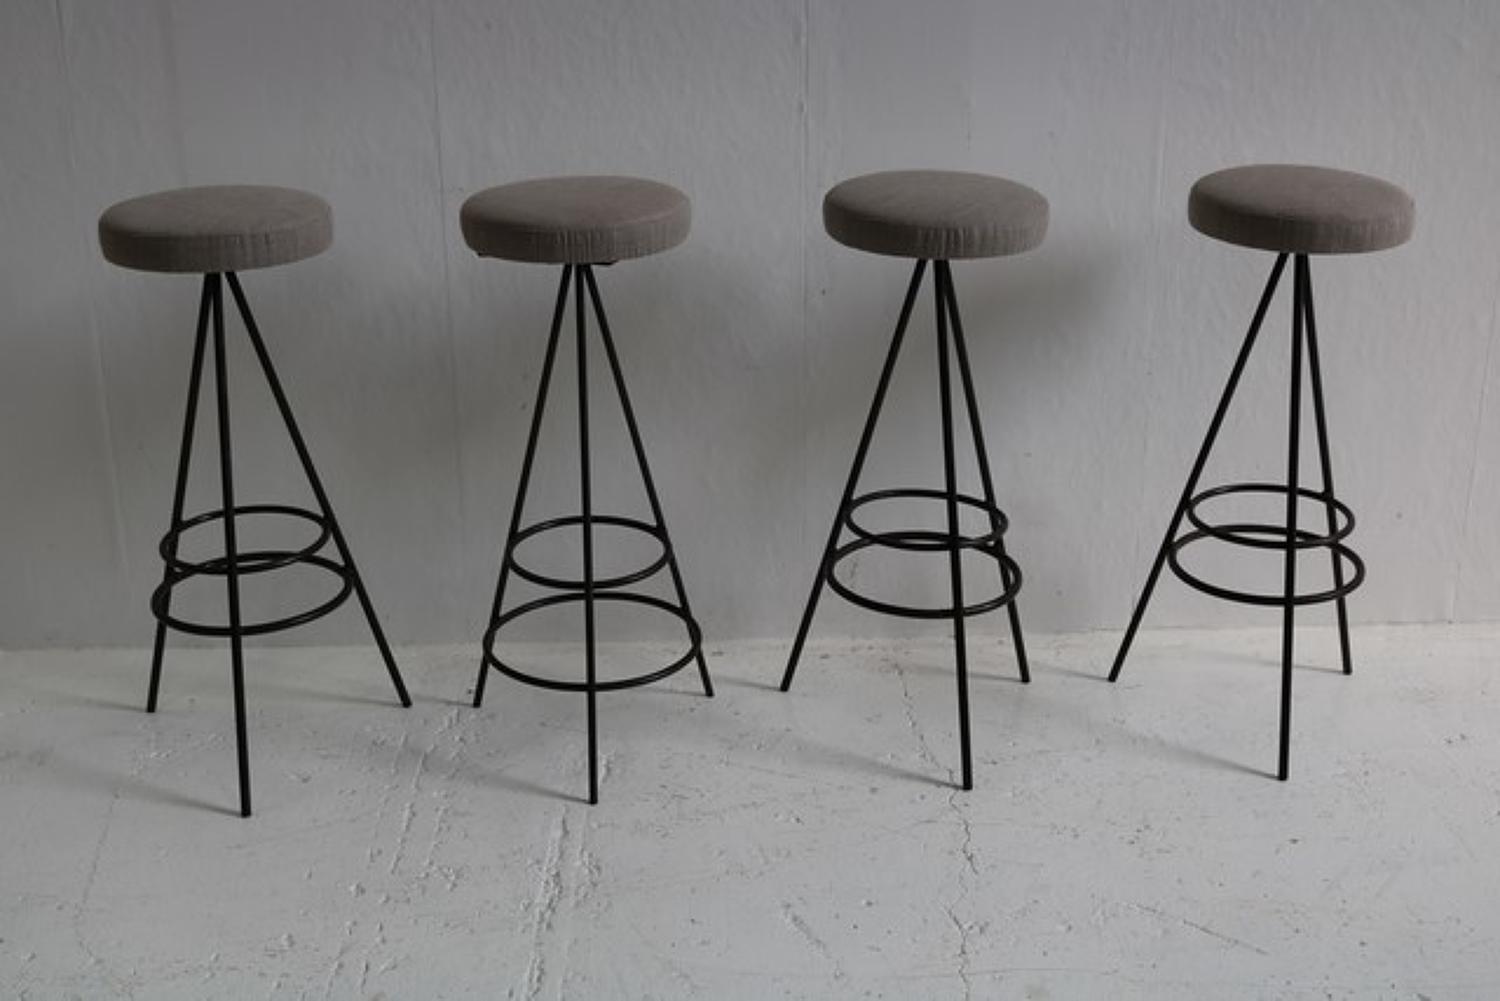 Set of 4 mid 20th century bar stools